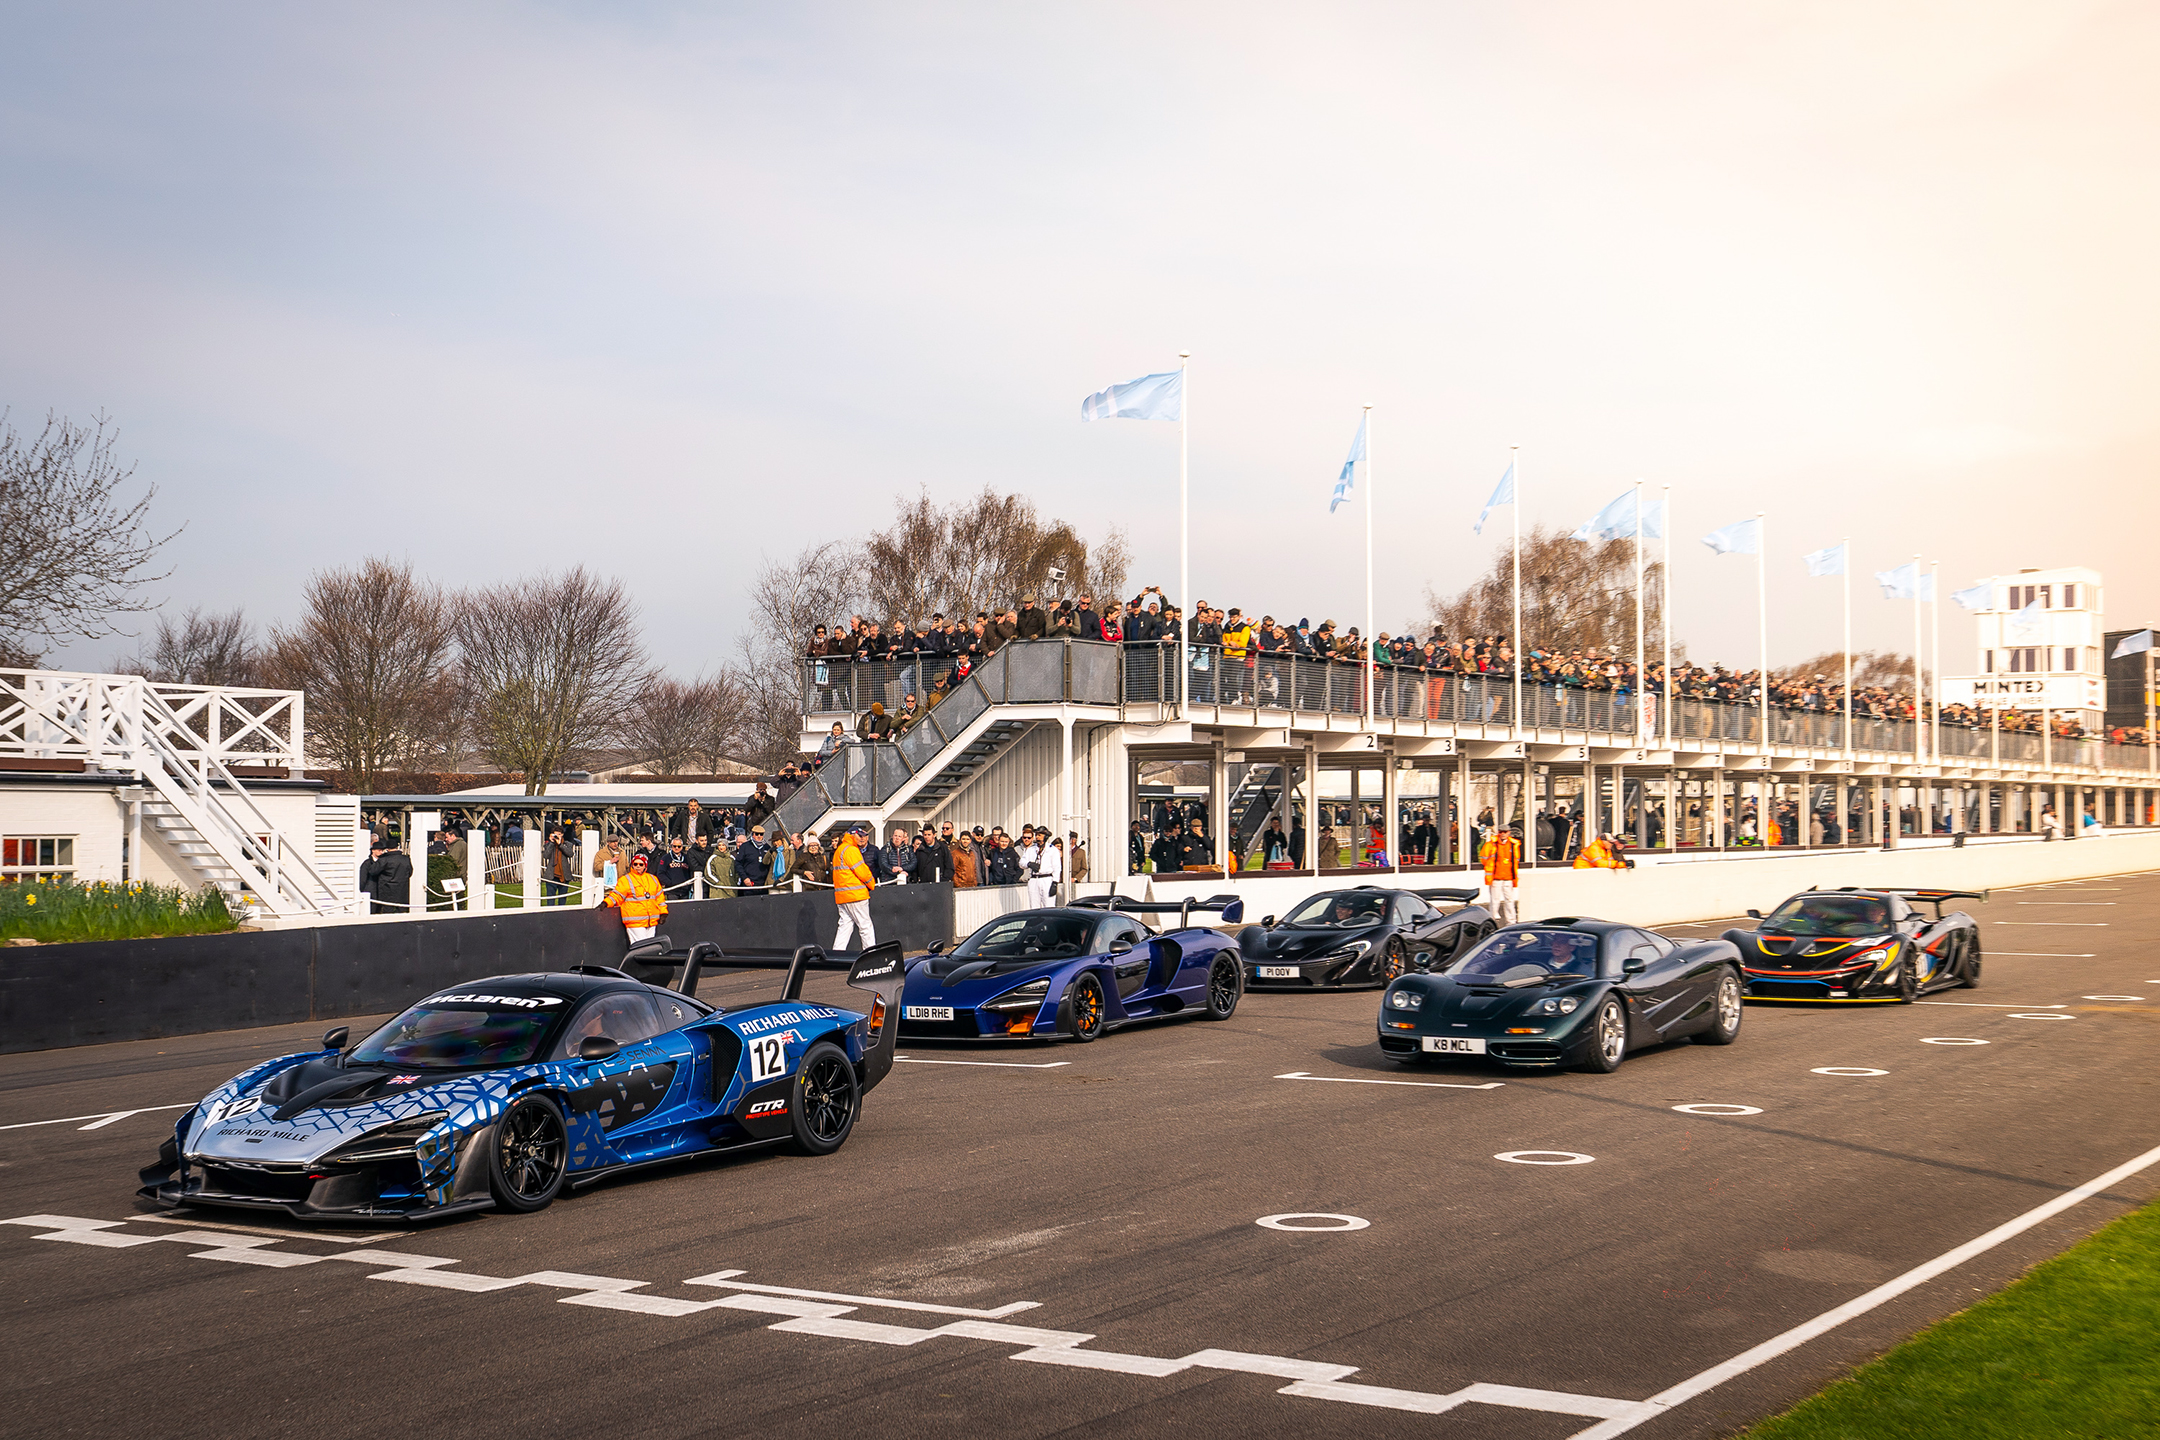 McLaren Senna GTR - Goodwood Motor Circuit - parade 77MM - 2019 - gMcLaren Senna GTR - Goodwood Motor Circuit - parade 77MM - 2019 - grid-start - photo via McLaren Automotiverid-start - photo via McLaren Automotive